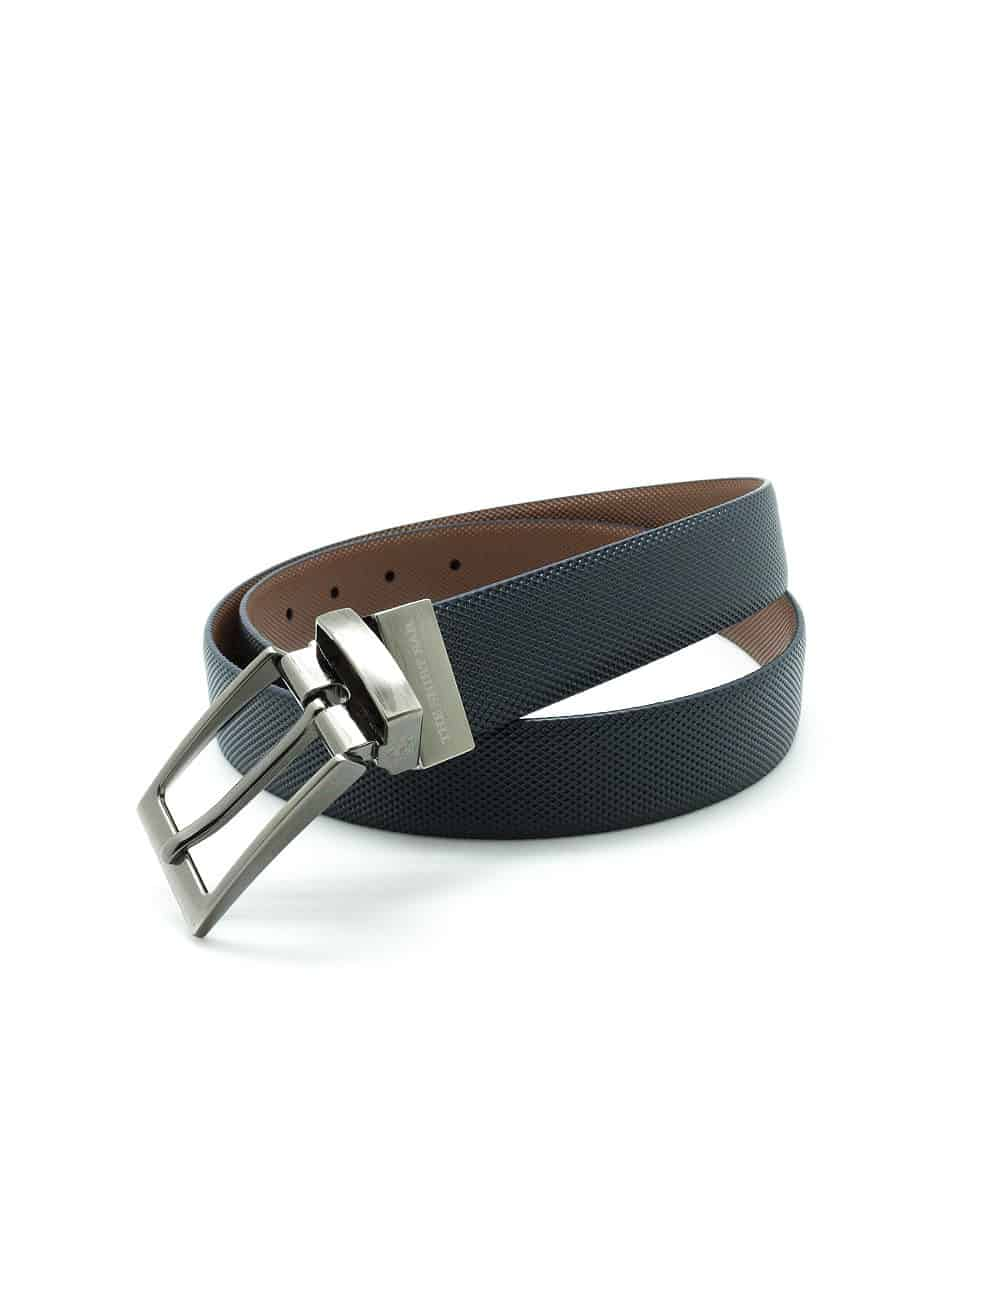 Navy / Brown Textured Reversible Leather Belt LBR4.8